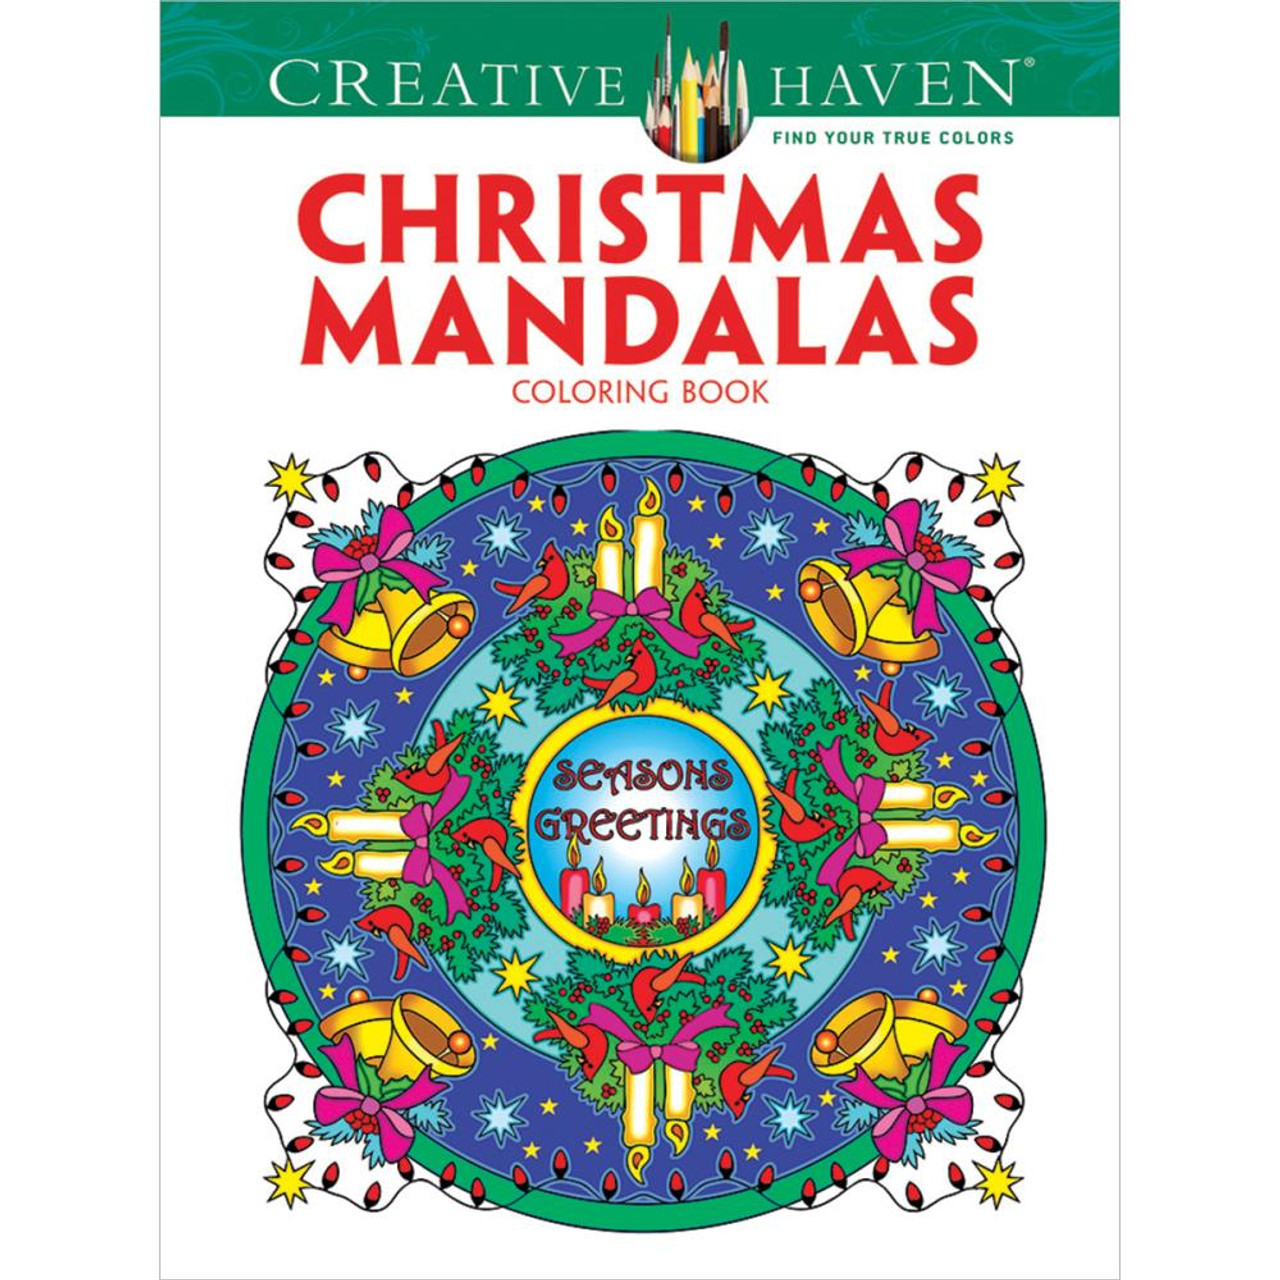 creative haven coloring book christmas mandalas - Creative Haven Coloring Books